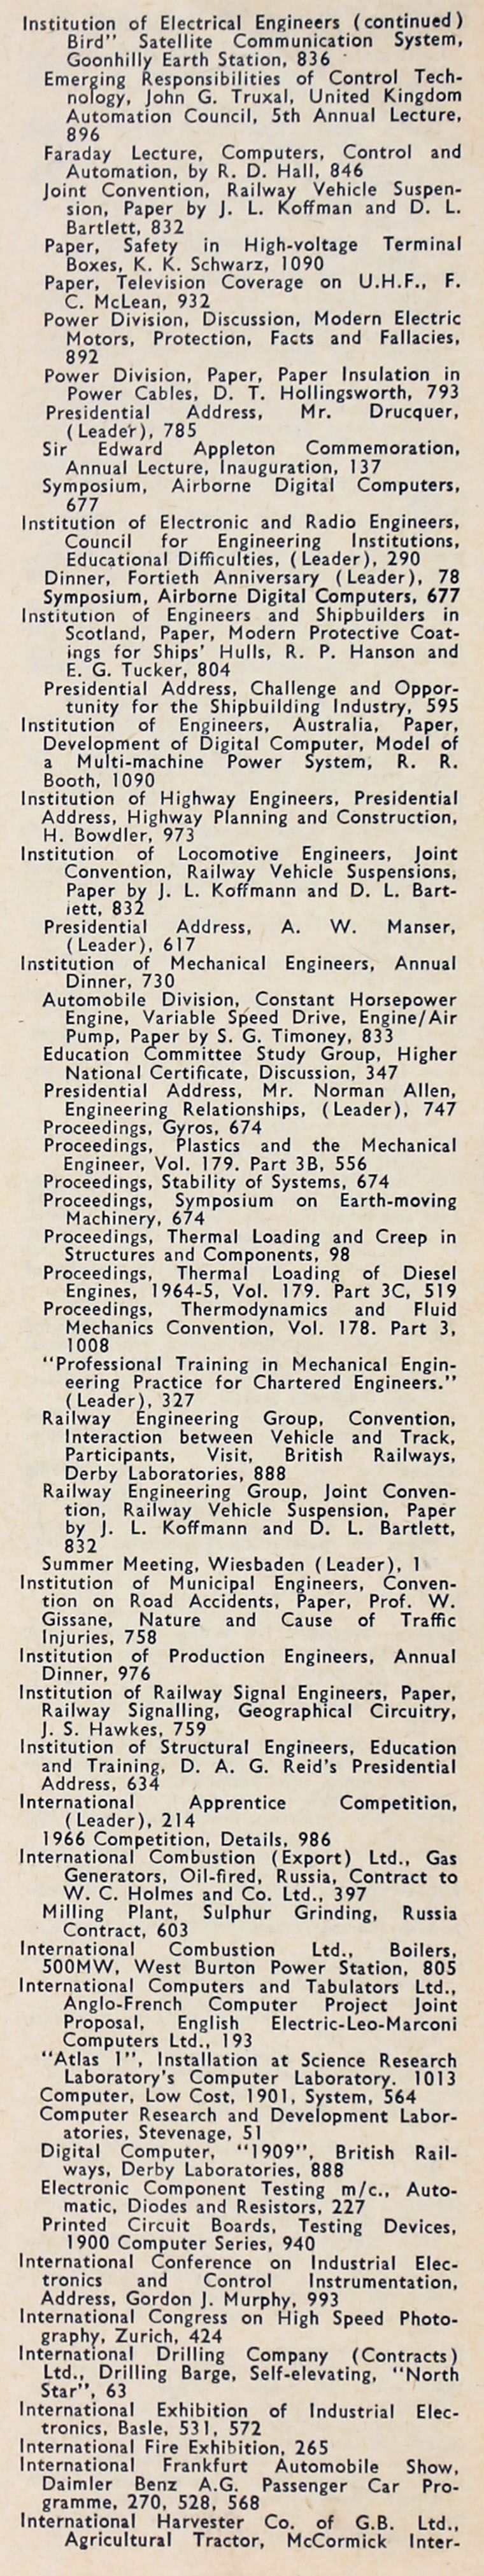 The Engineer 1965 Jul Dec Index Electronic Expansion Valve Controller Assemblyprinted Circuit Board